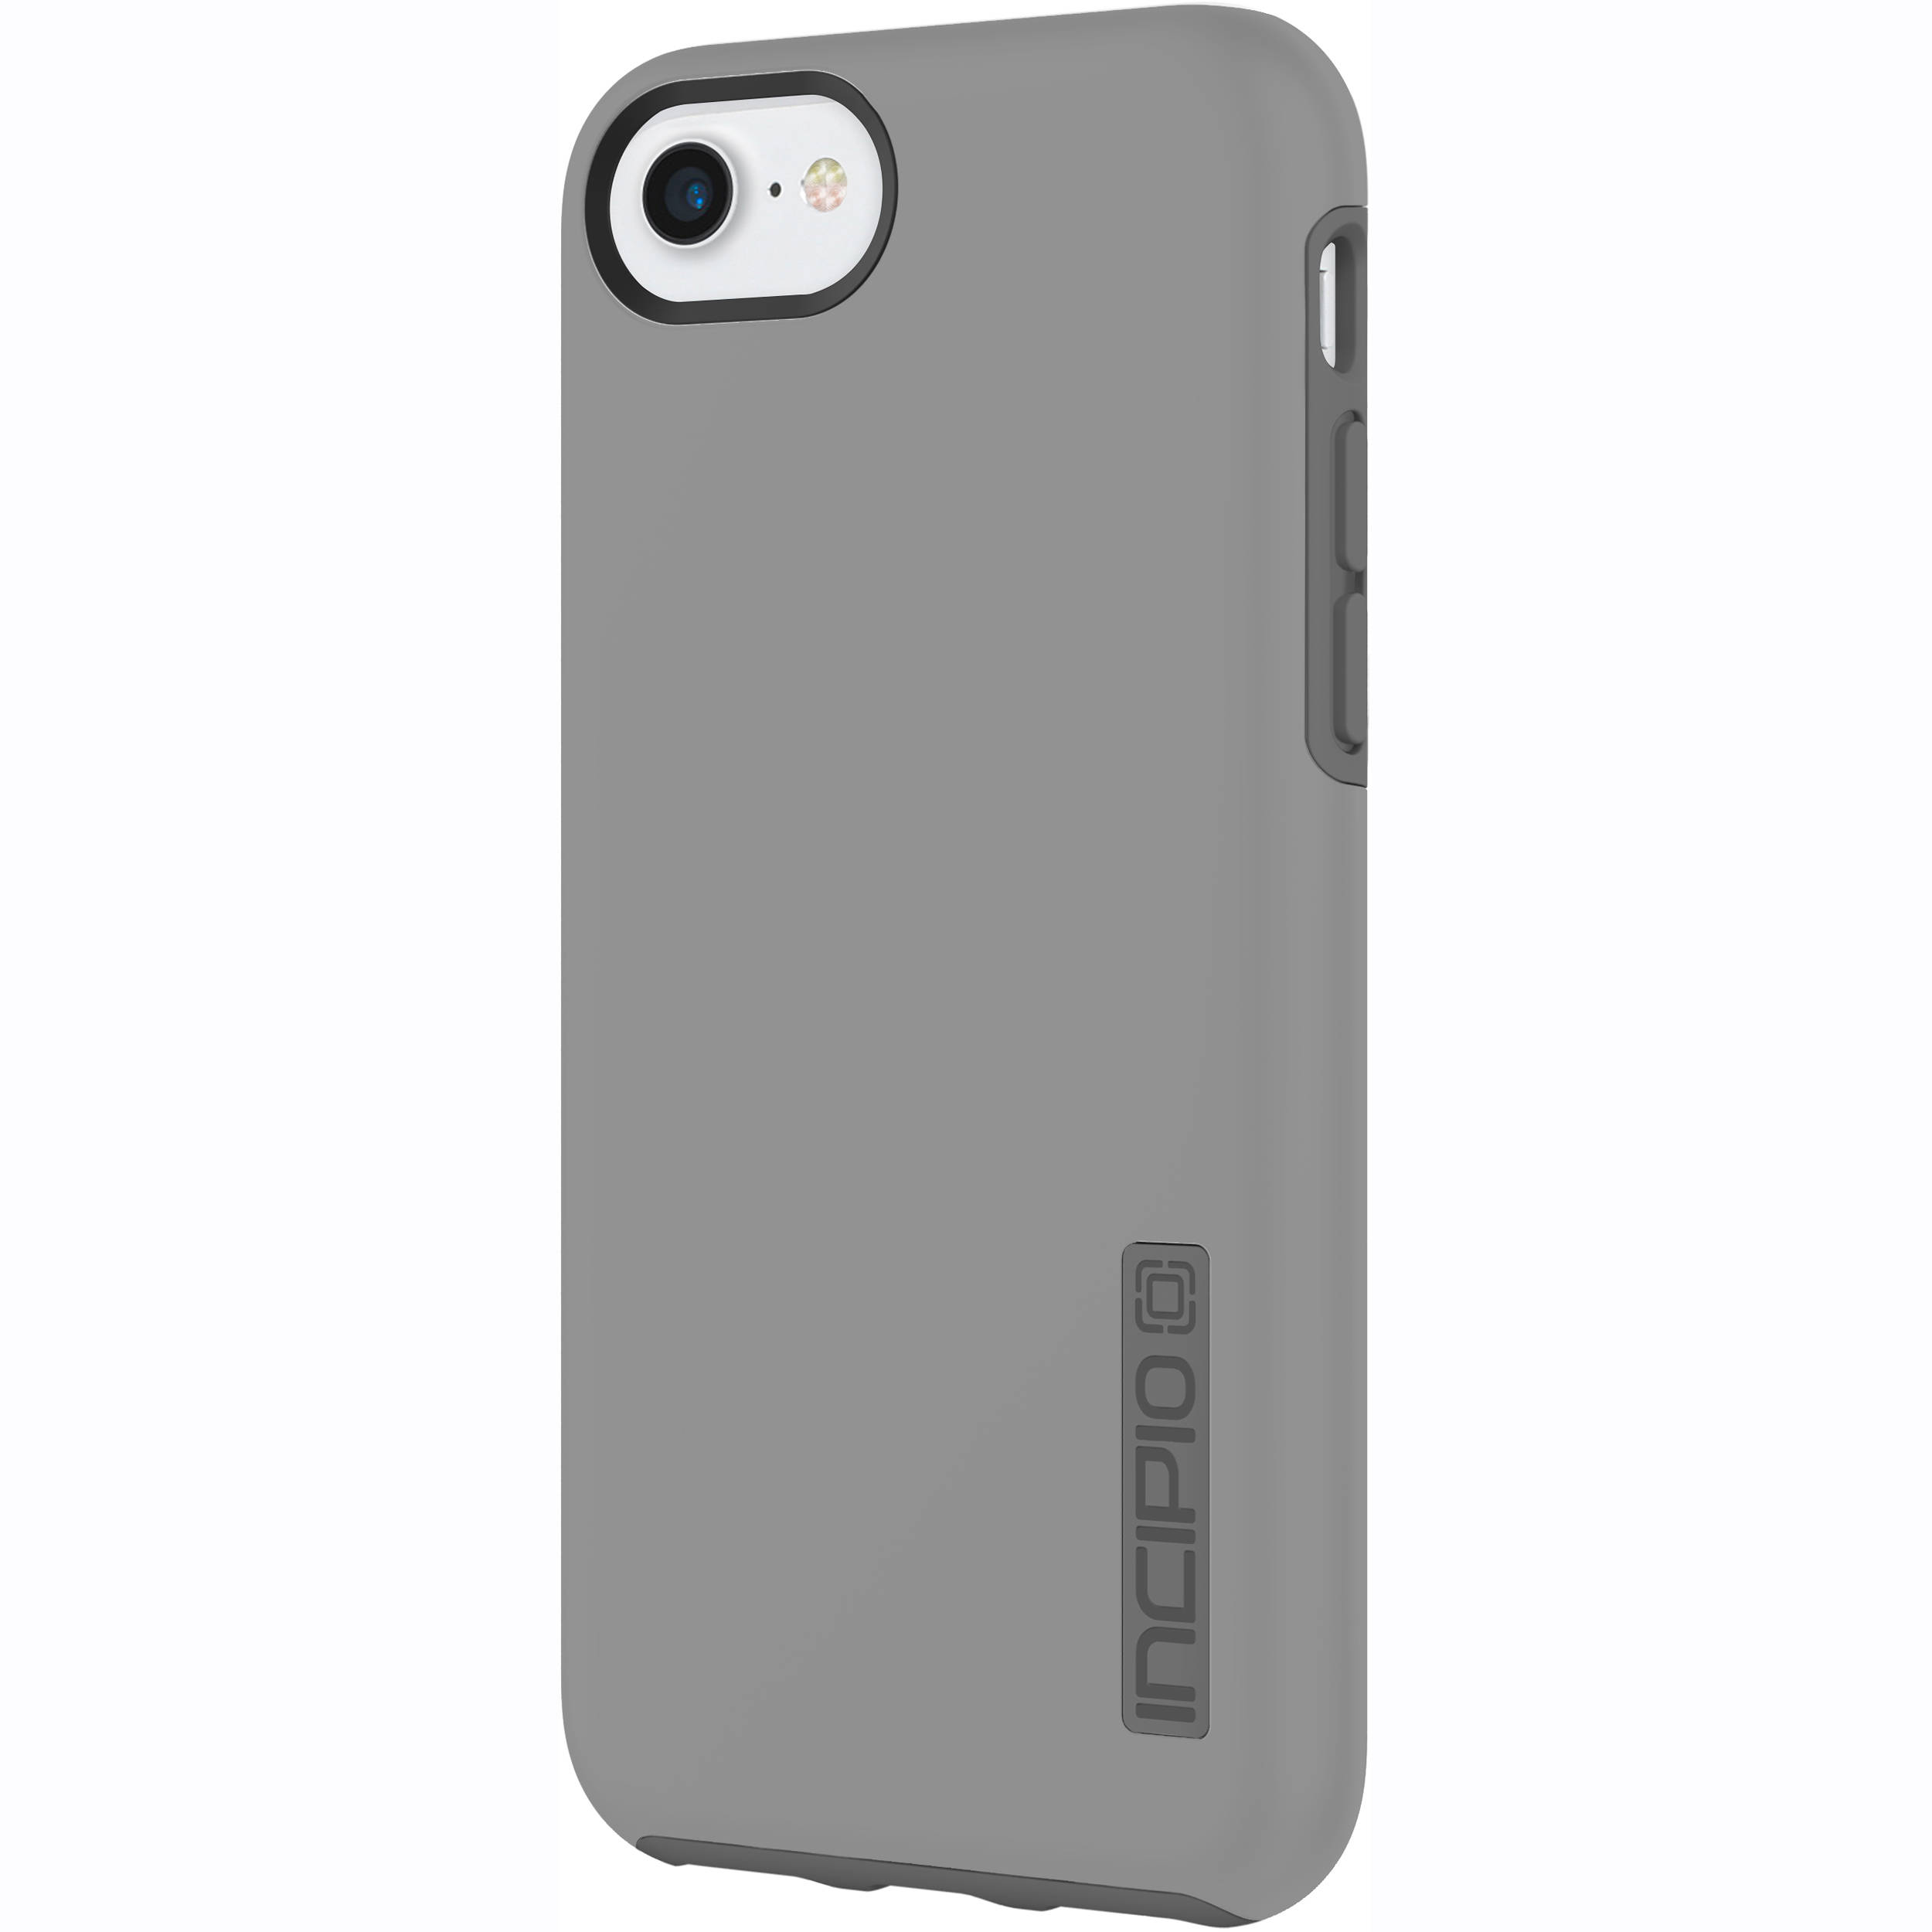 new styles f7e11 46747 Incipio DualPro Case for iPhone 7 (Gray/Charcoal) IPH-1465-GCH